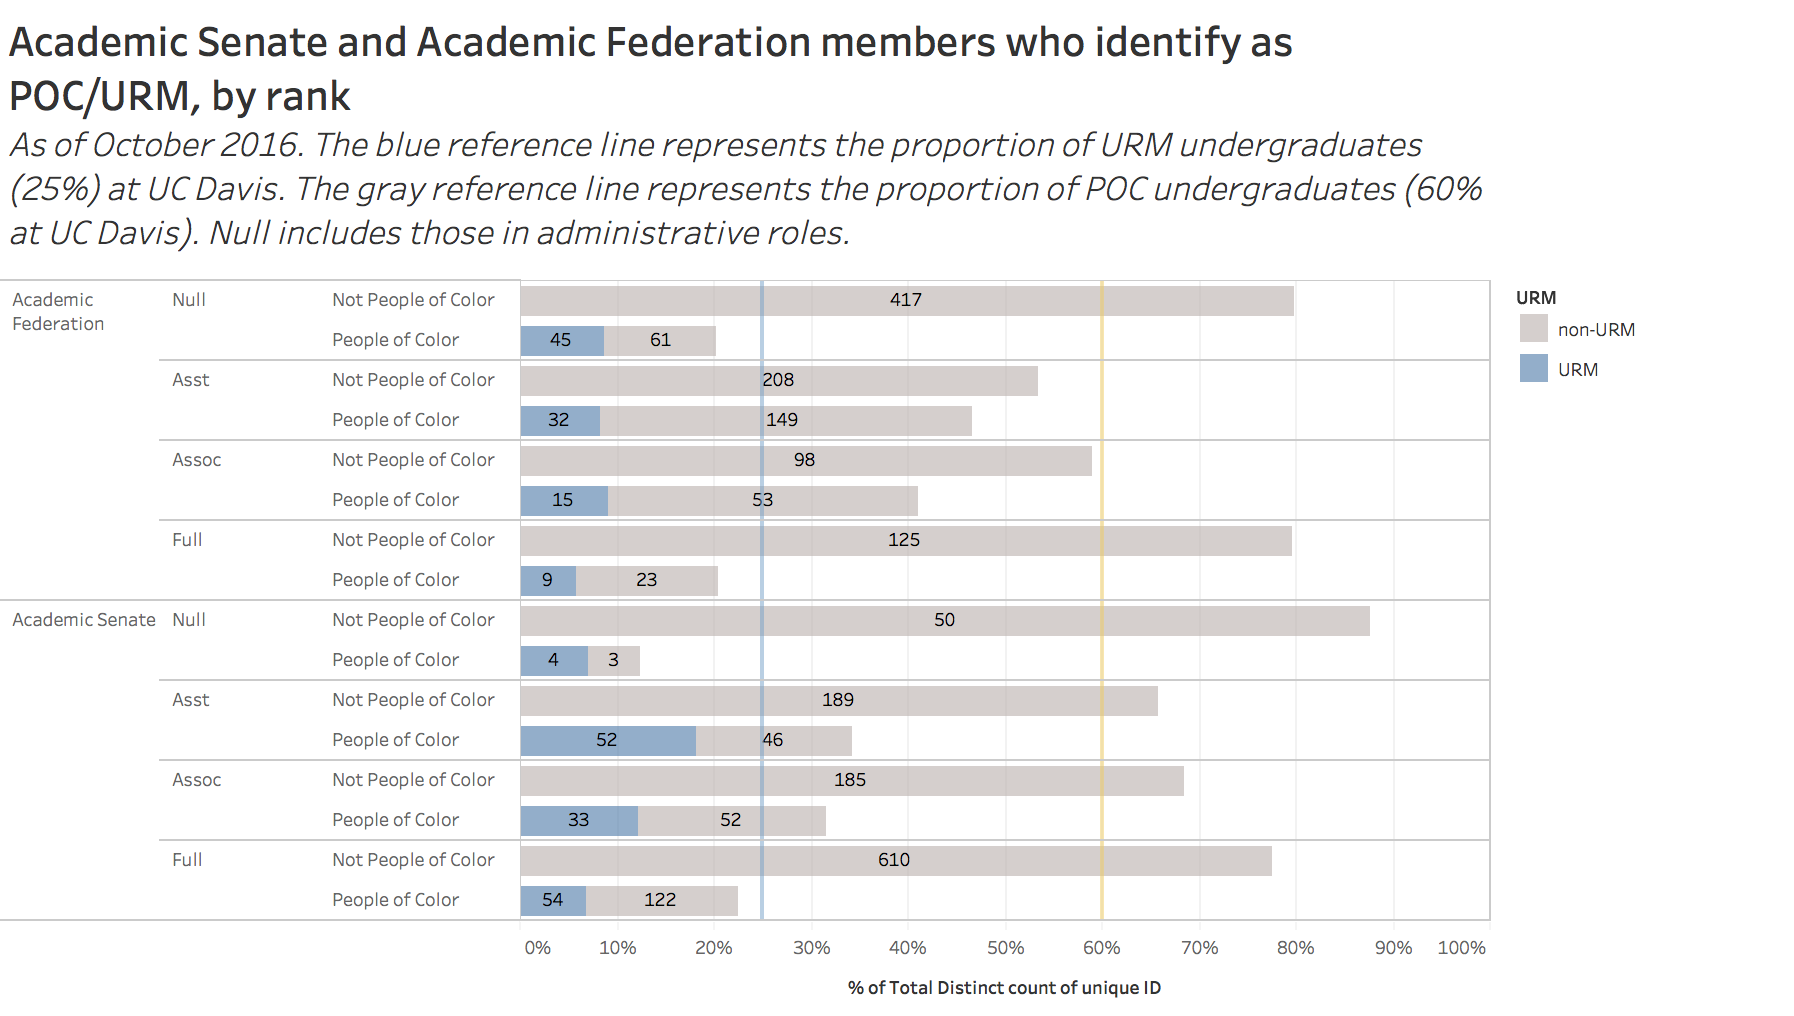 academic senate and academic federation members who identify as POC/URM by rank